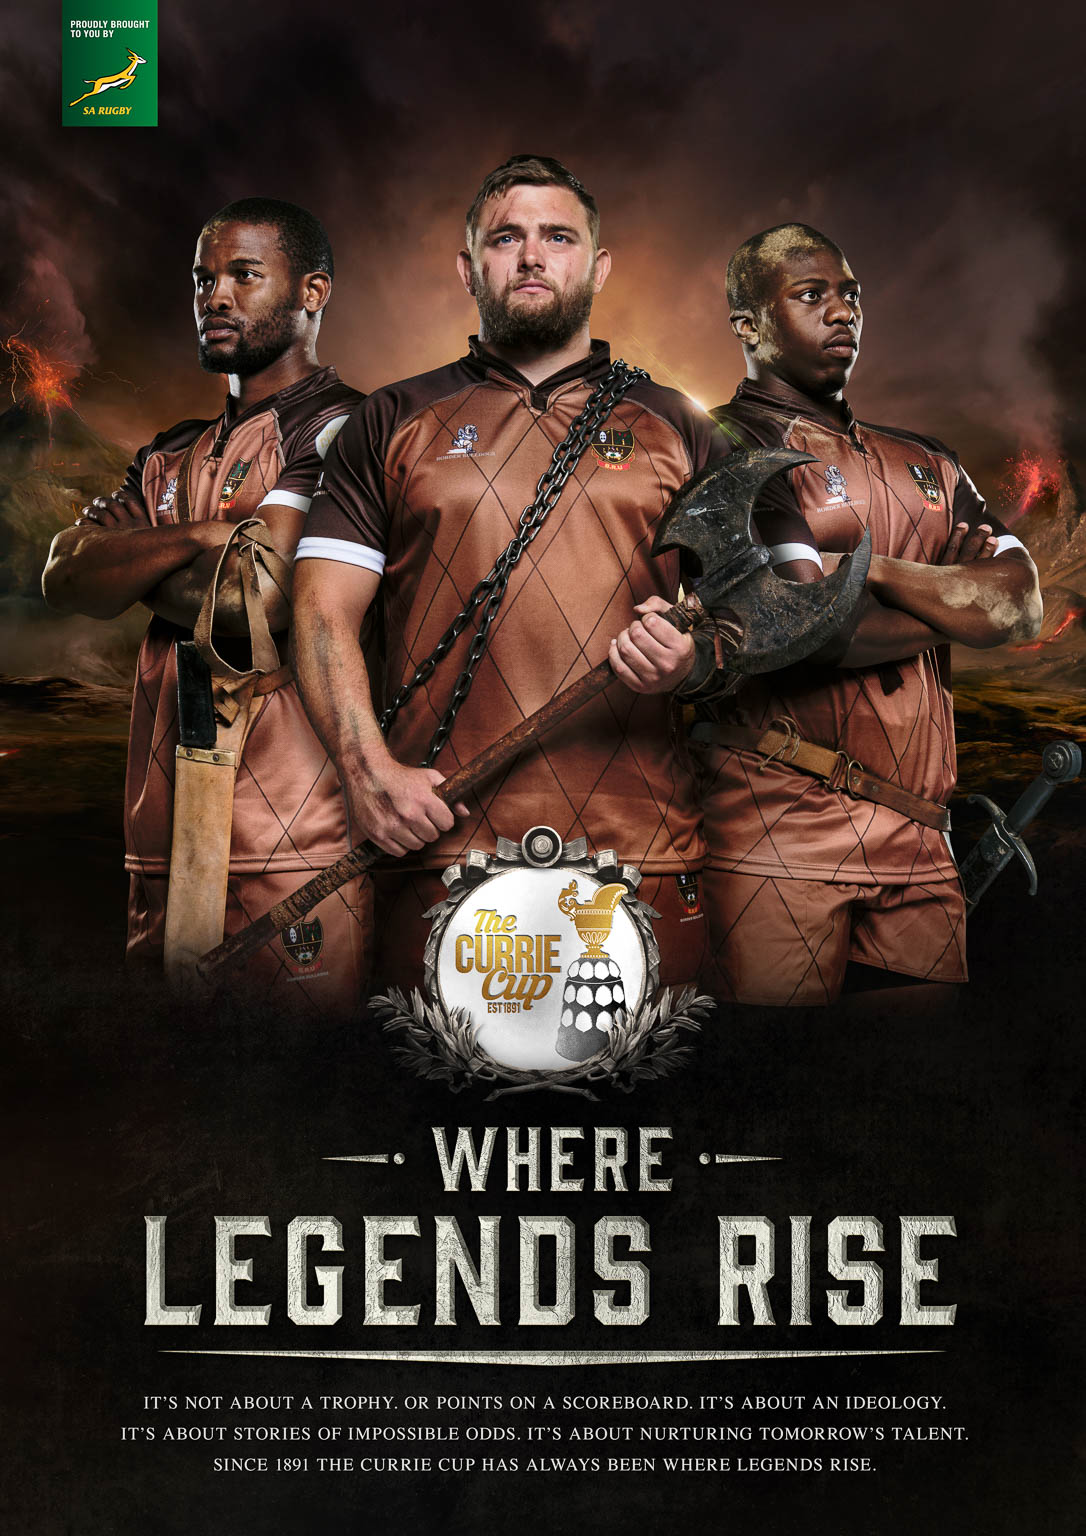 The Currie Cup - Where Legends Rise